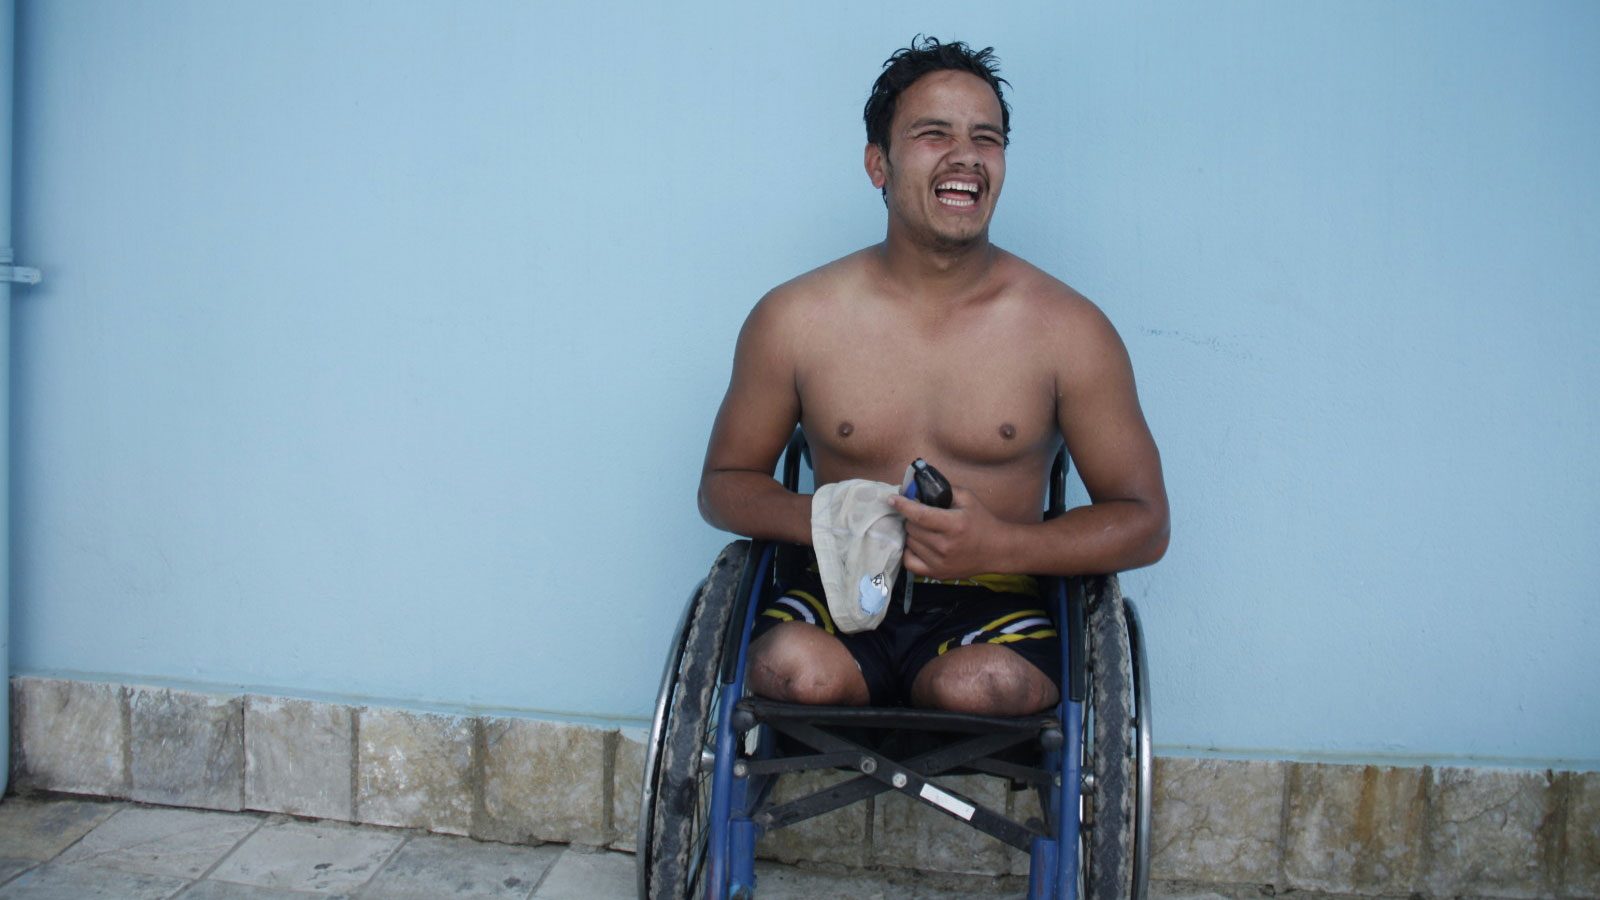 Nepal earthquake survivor | Winning medals and training for the Paralympics